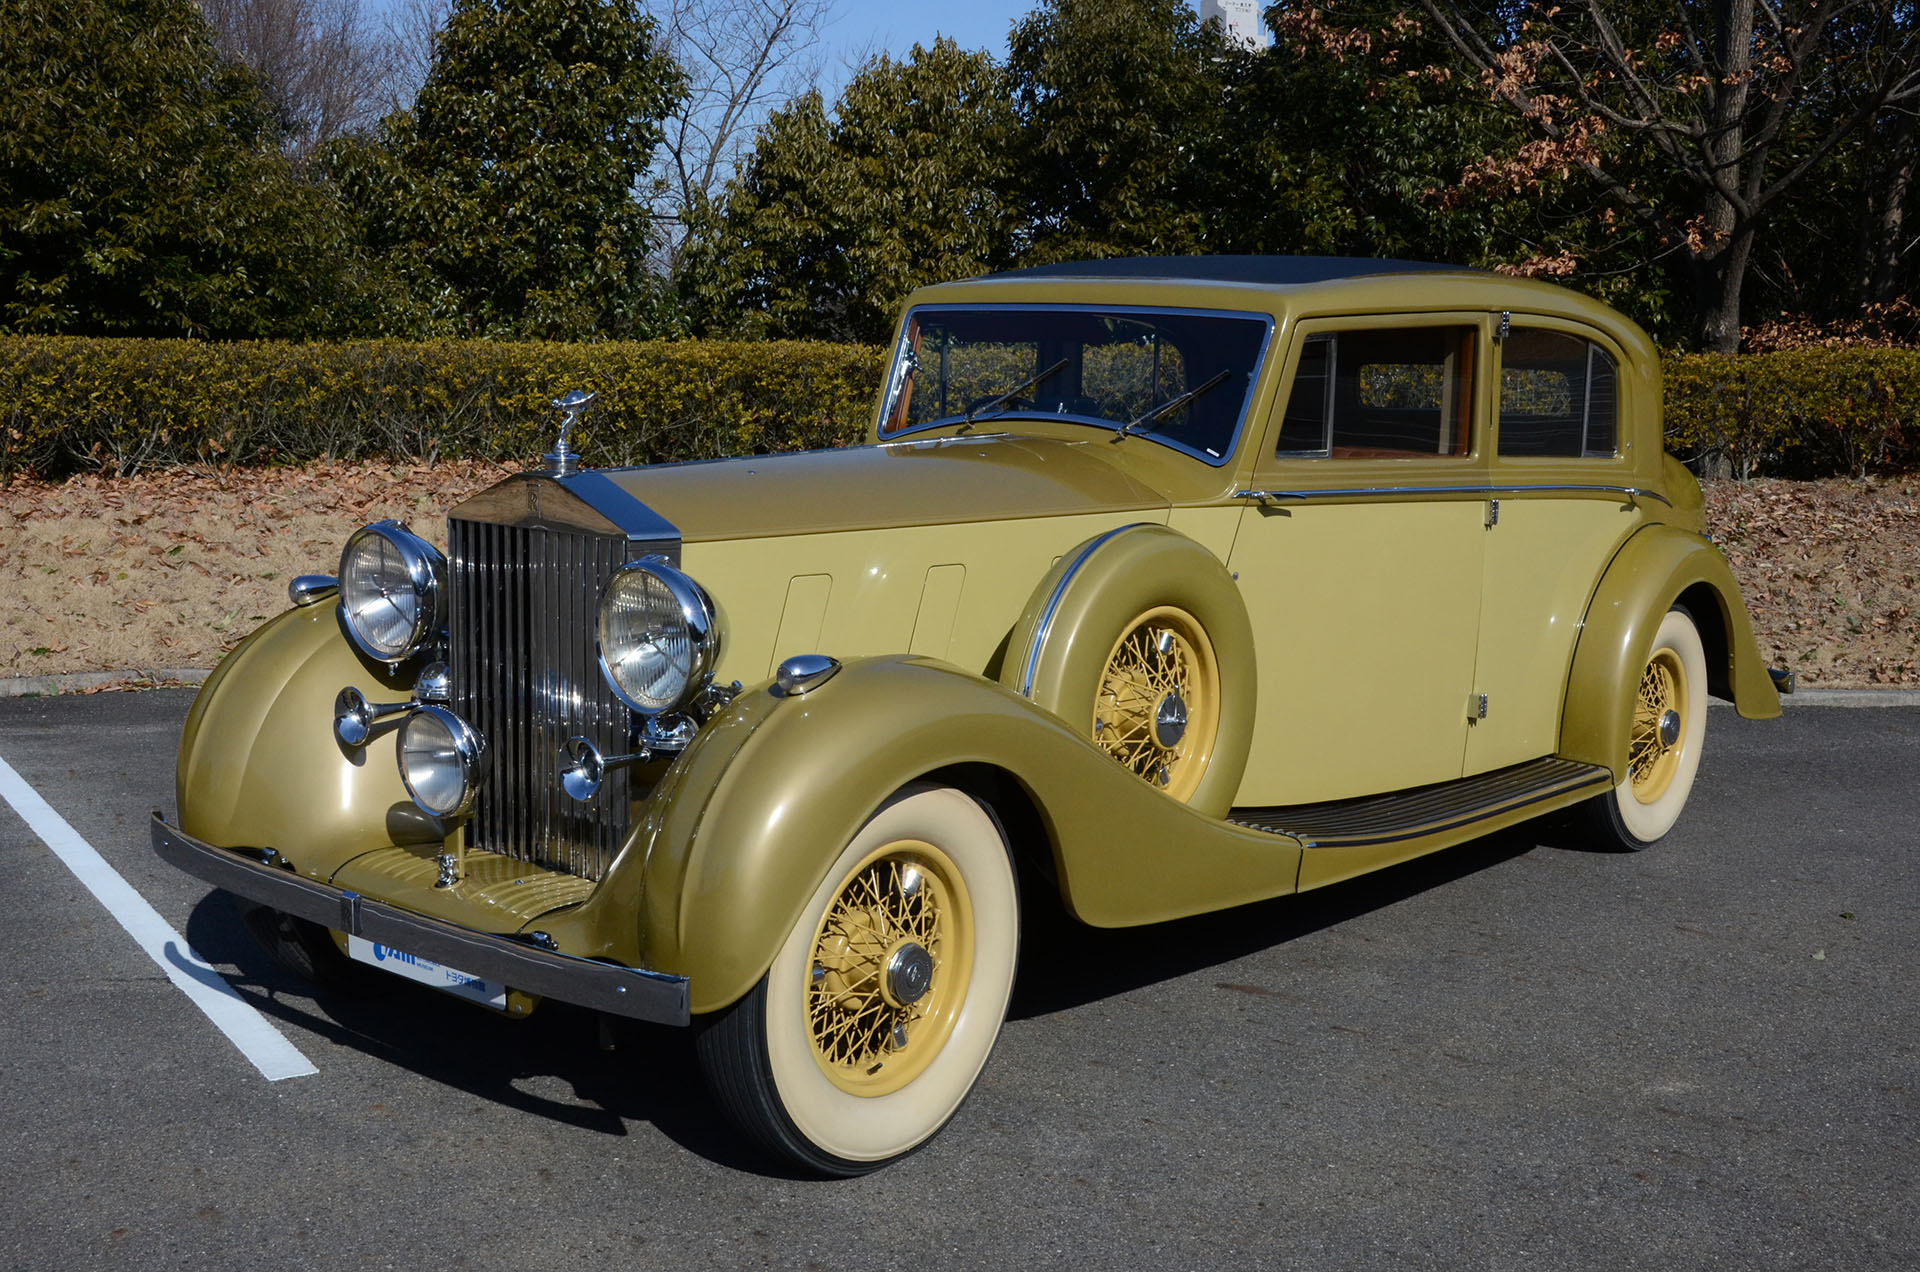 Rolls Royce Phantom Iii 1937 U K Toyota Motor Corporation Official Global Website